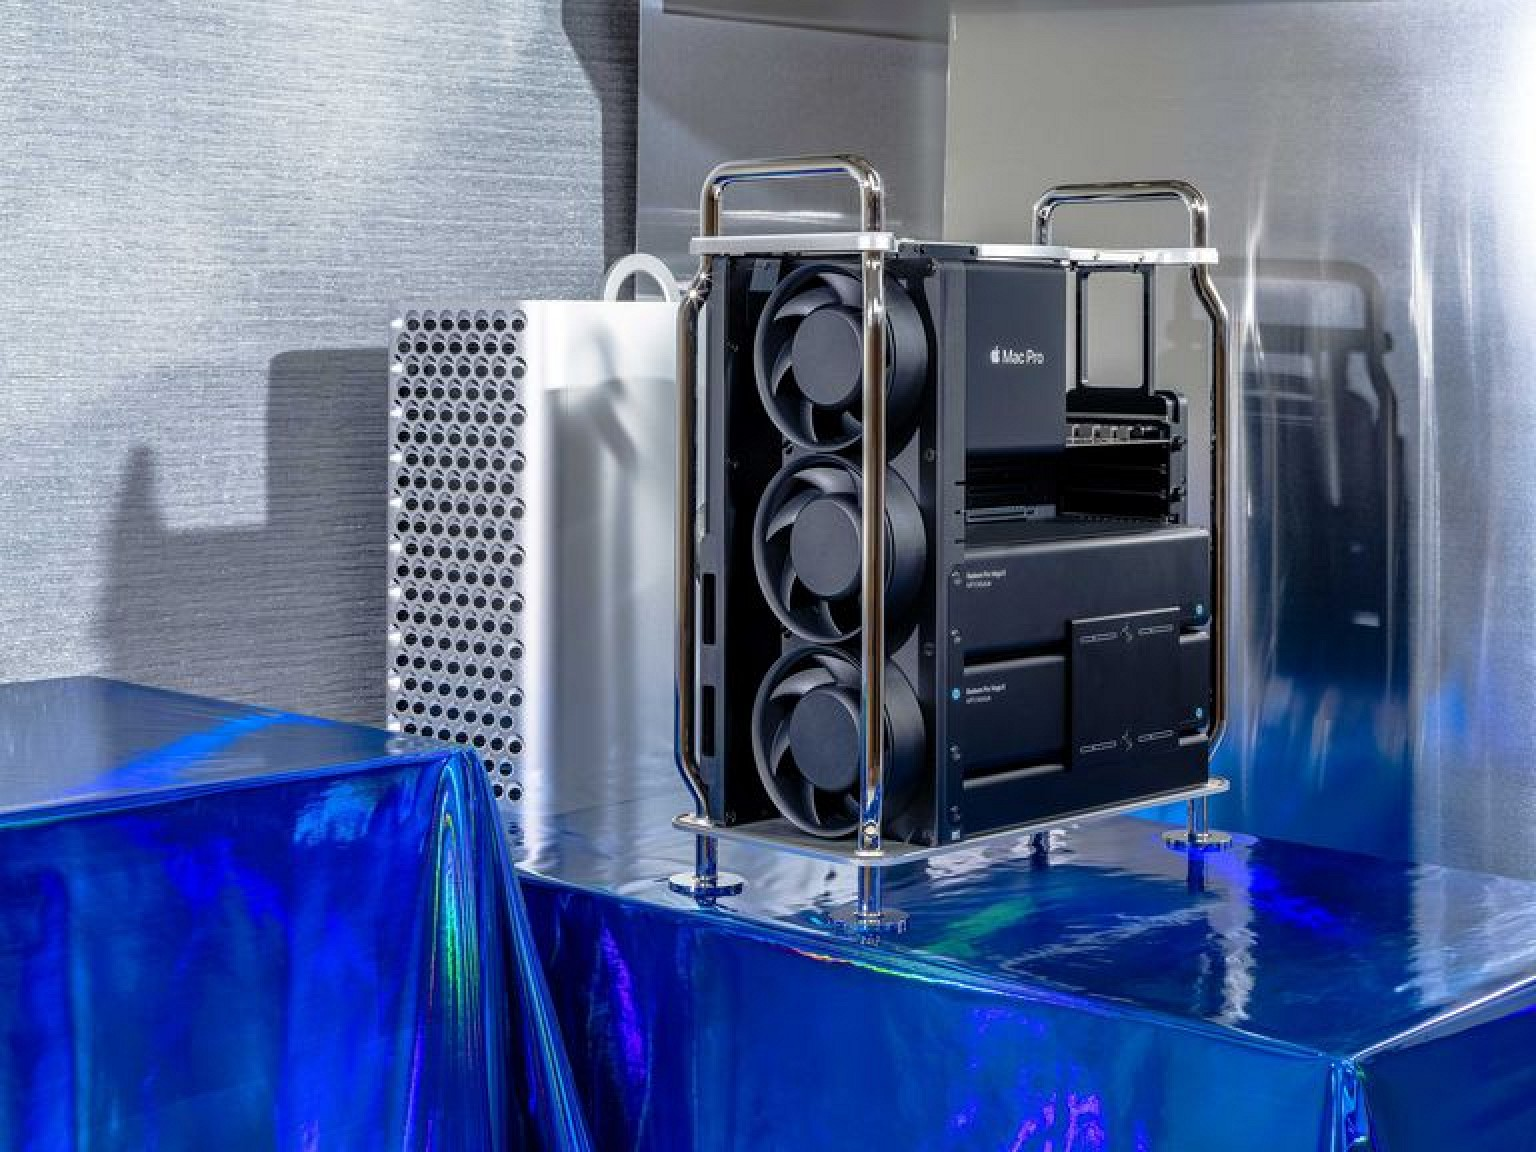 Apple Engineers Explain New Mac Pro's Innovative Cooling Features